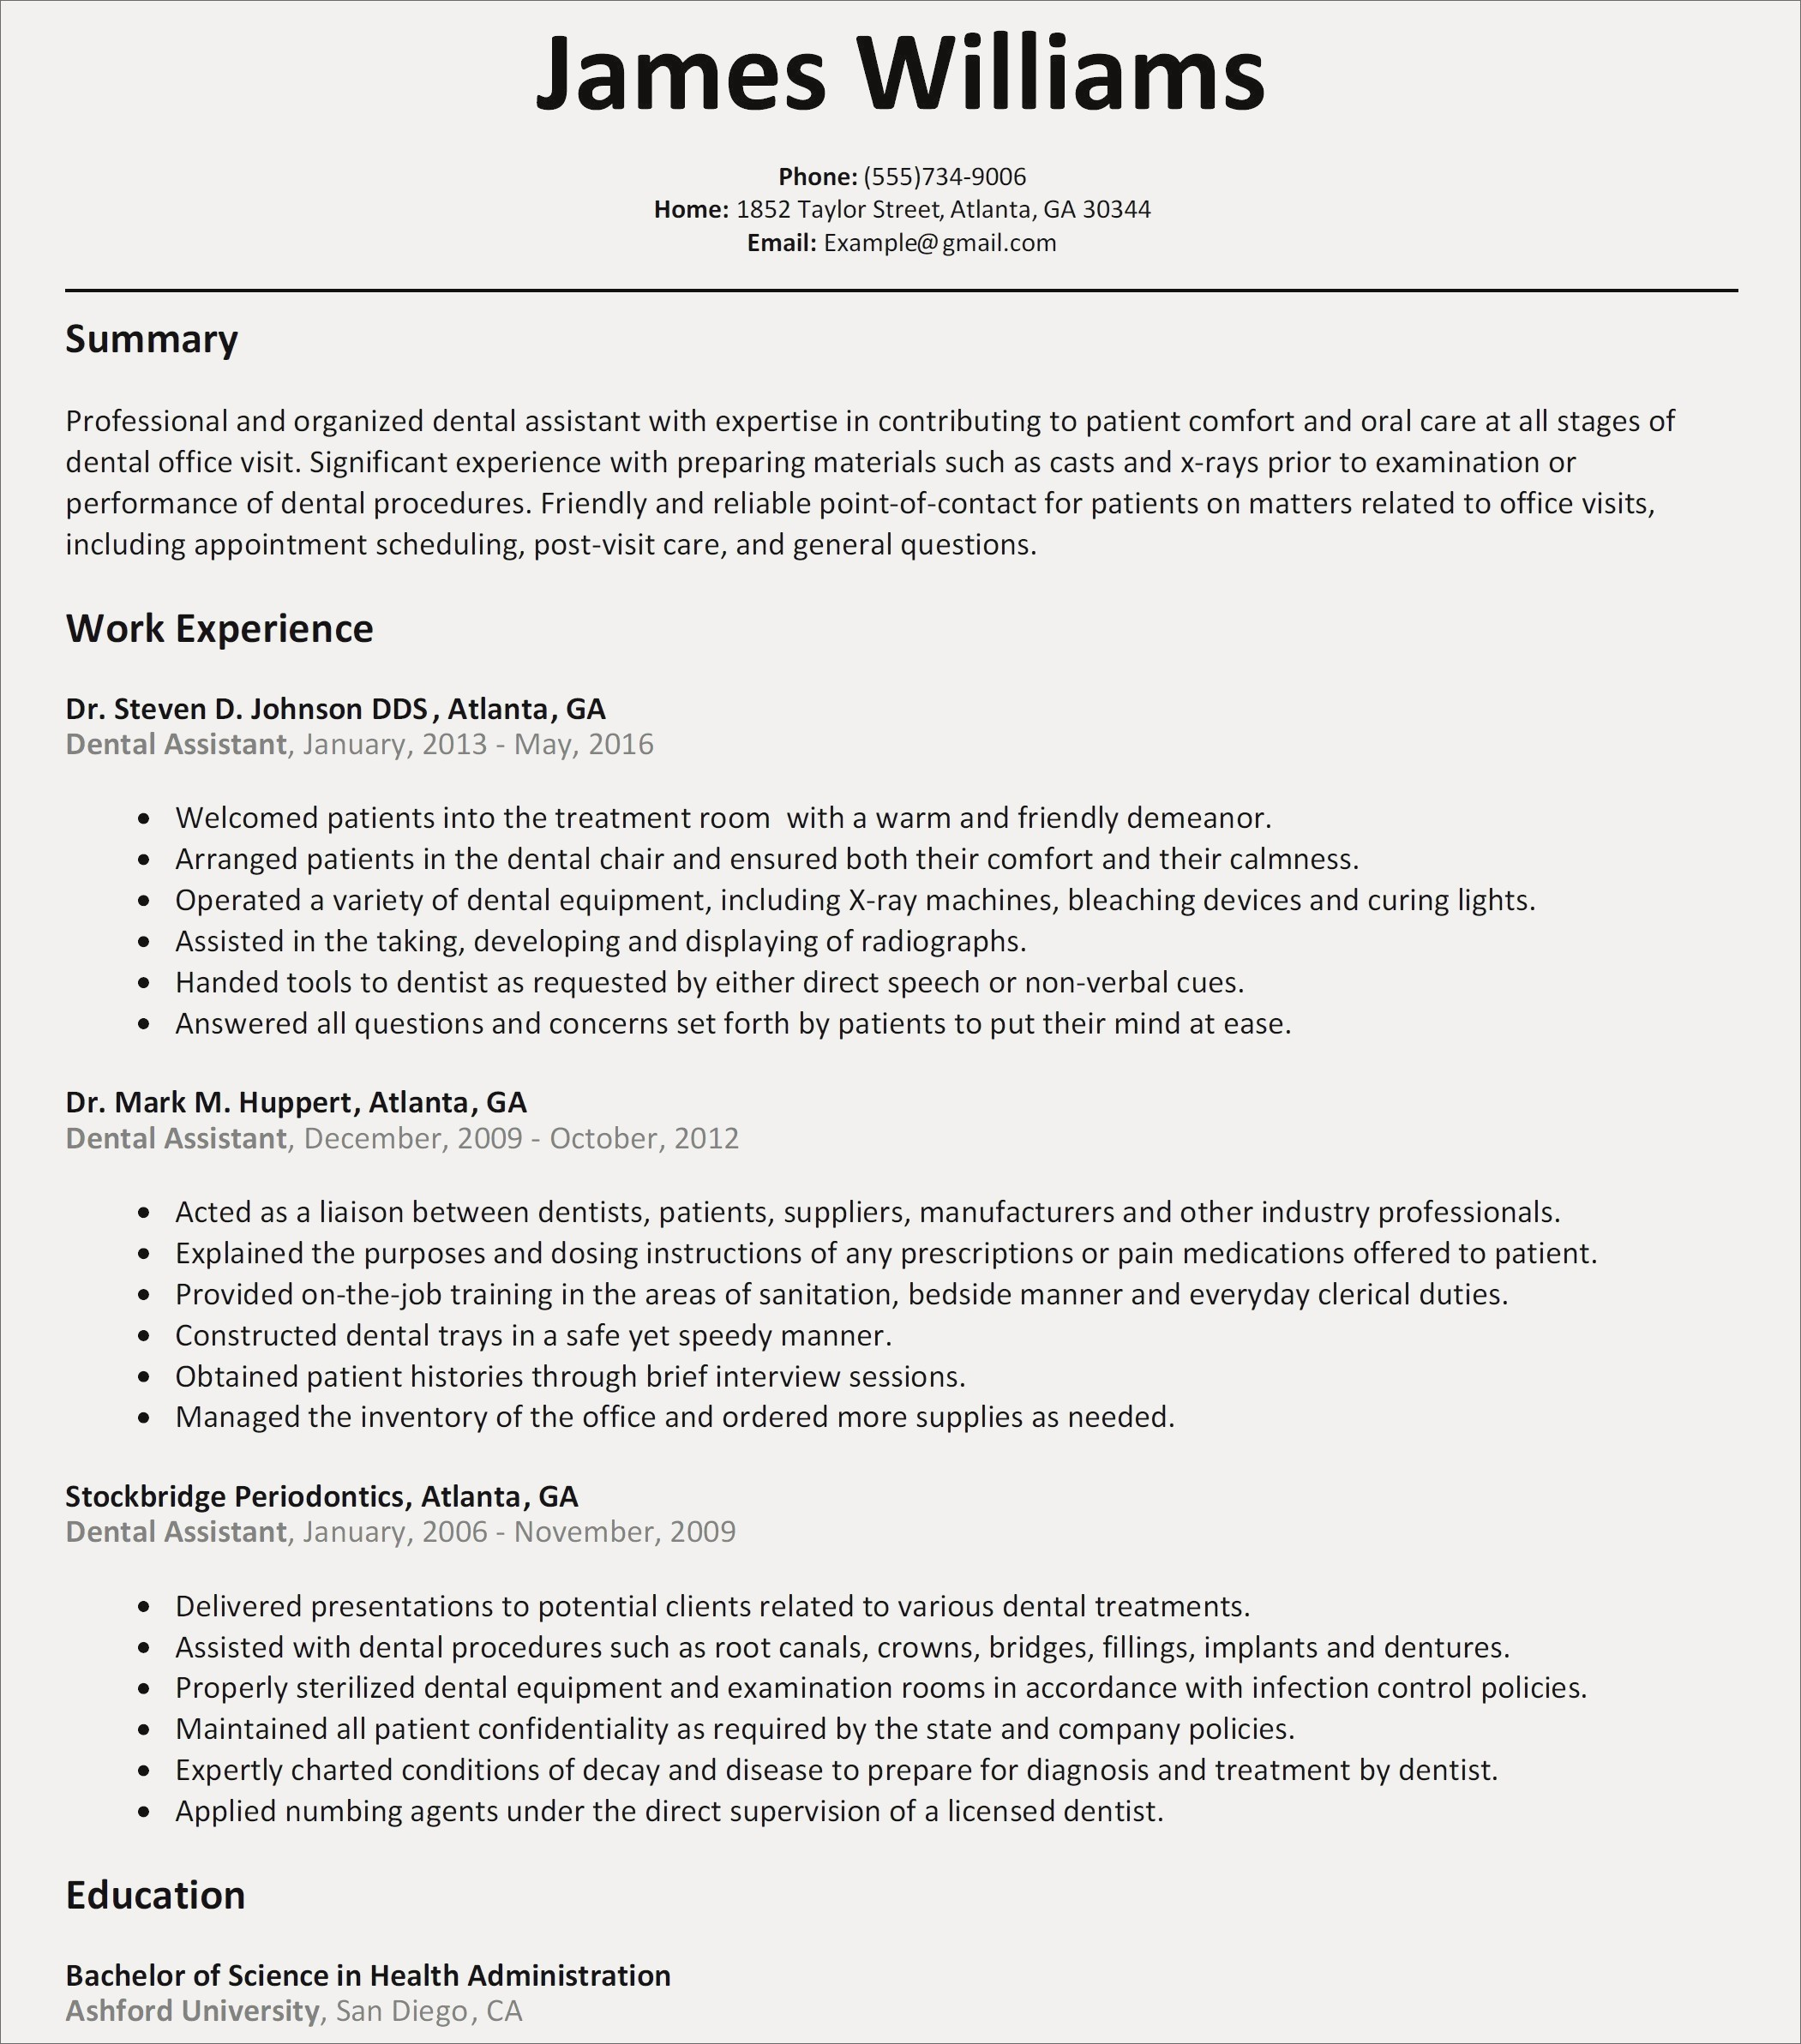 Professional Summary Resume Examples - Resume Professional Summary Examples New Sample Resumes